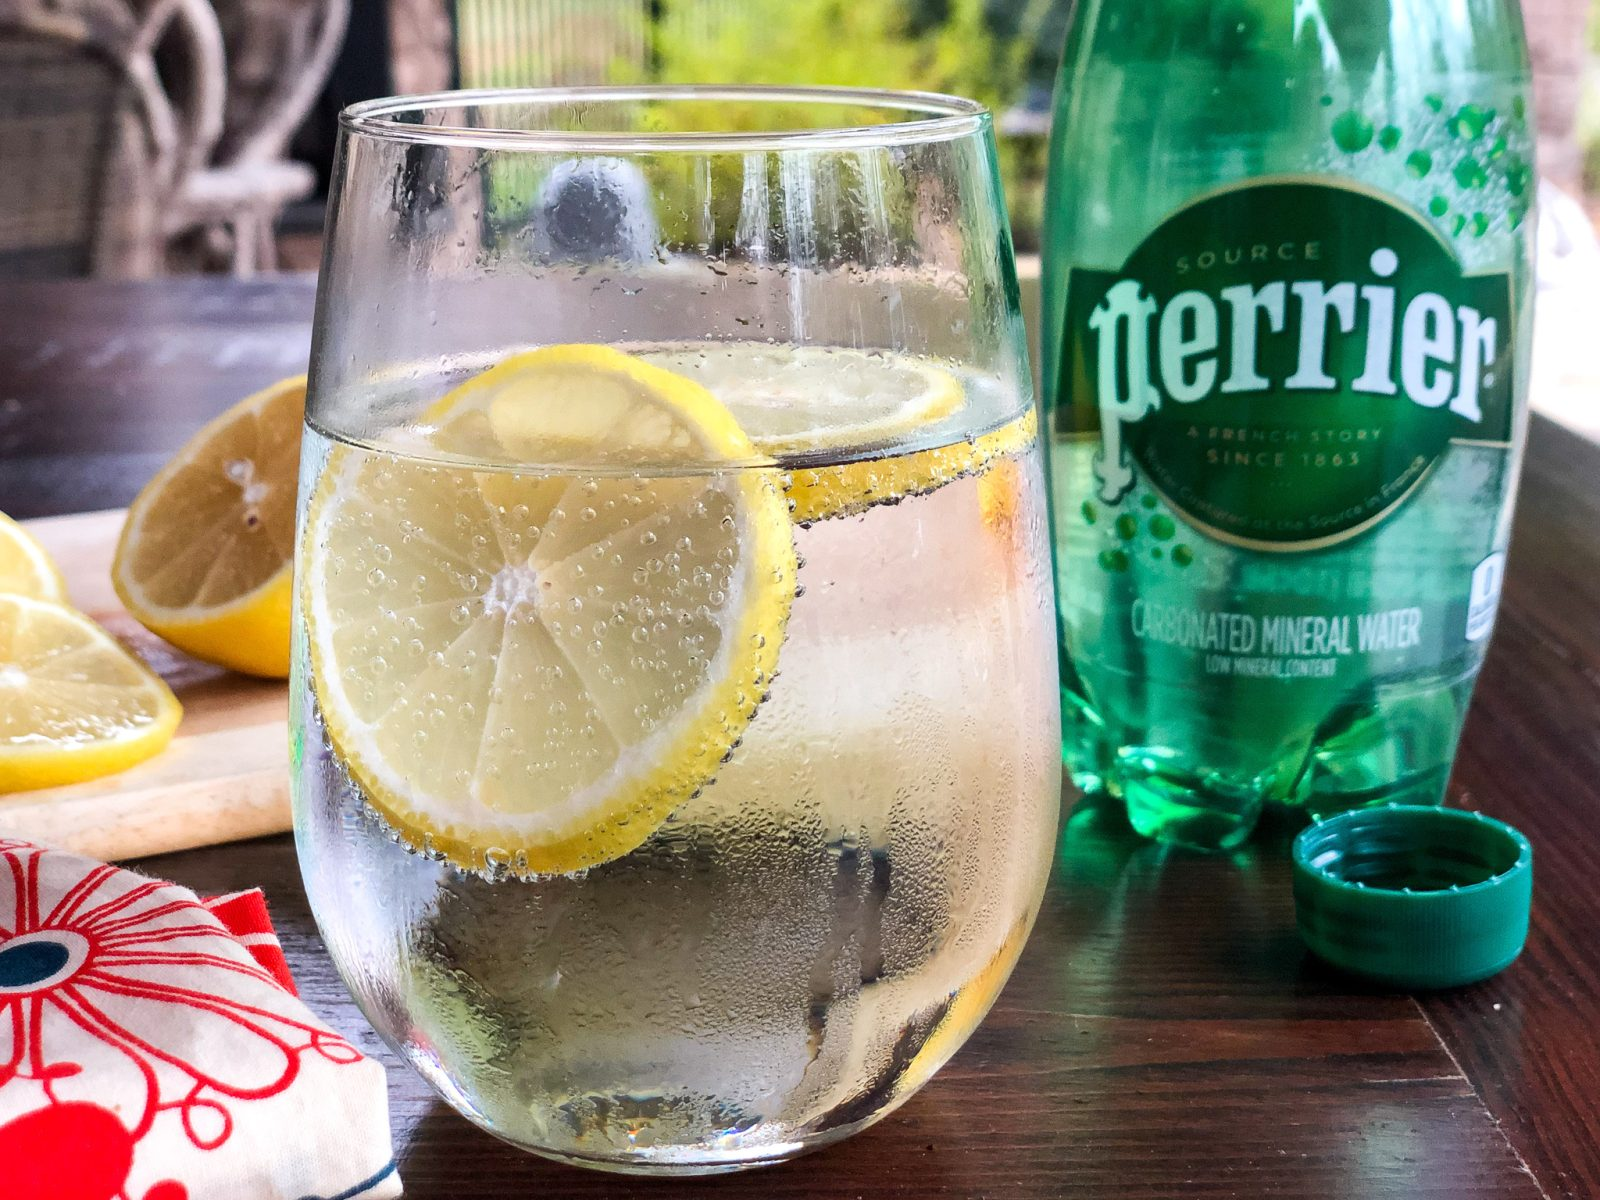 Add Some Spark To Your Holiday With A PERRIER® Rondelle - Save Now At Publix on I Heart Publix